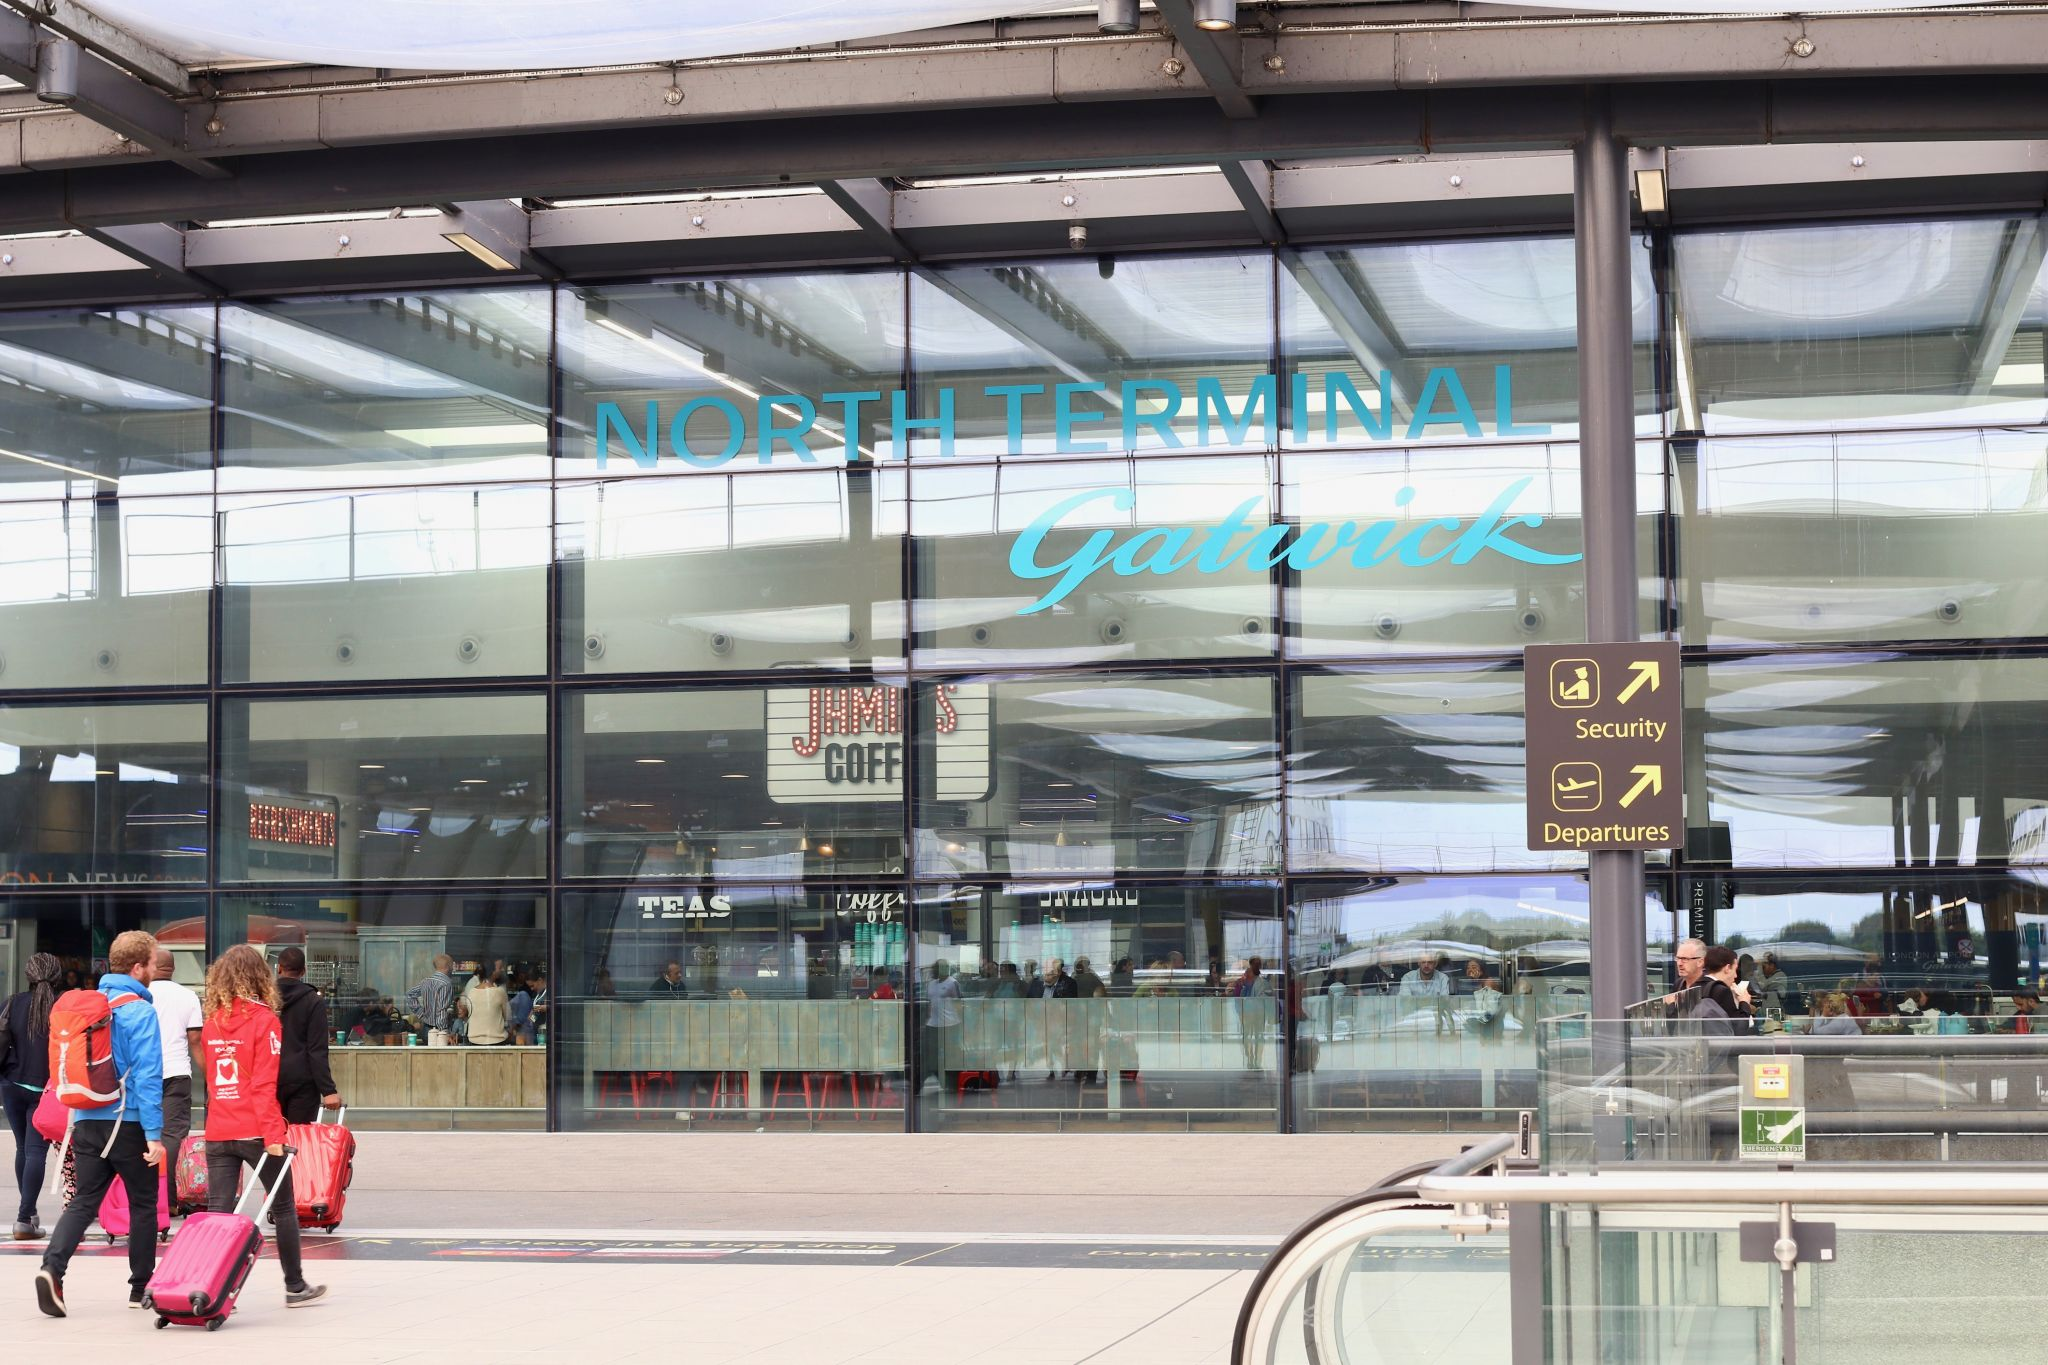 Gatwick airport North terminal - how to have a stress free airport experience